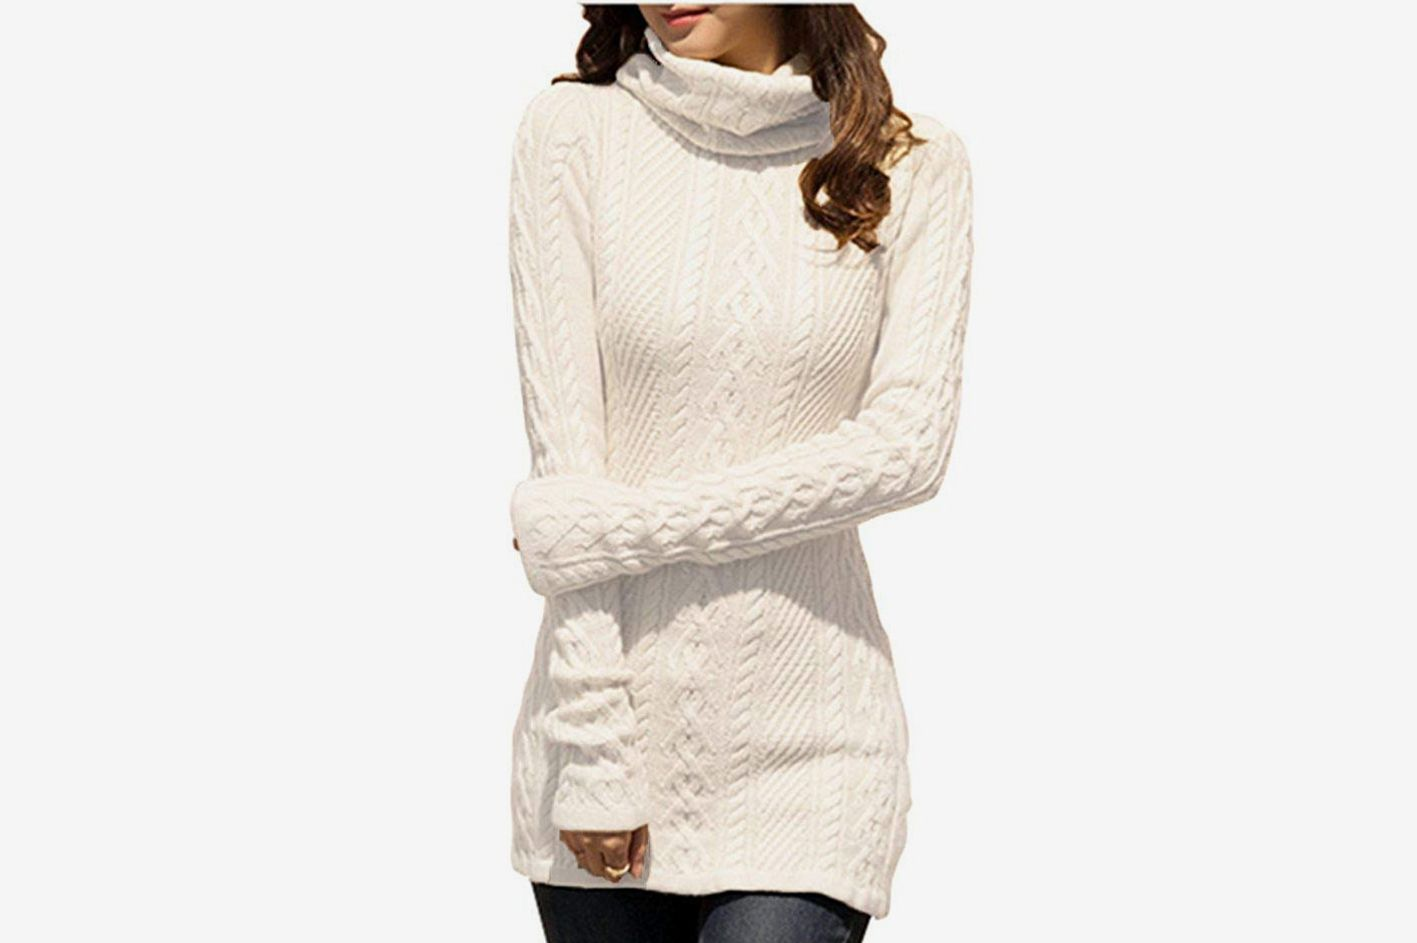 2567bebbf76 v28 Women Polo Neck Knit Stretchable Long Sleeve Slim Sweater